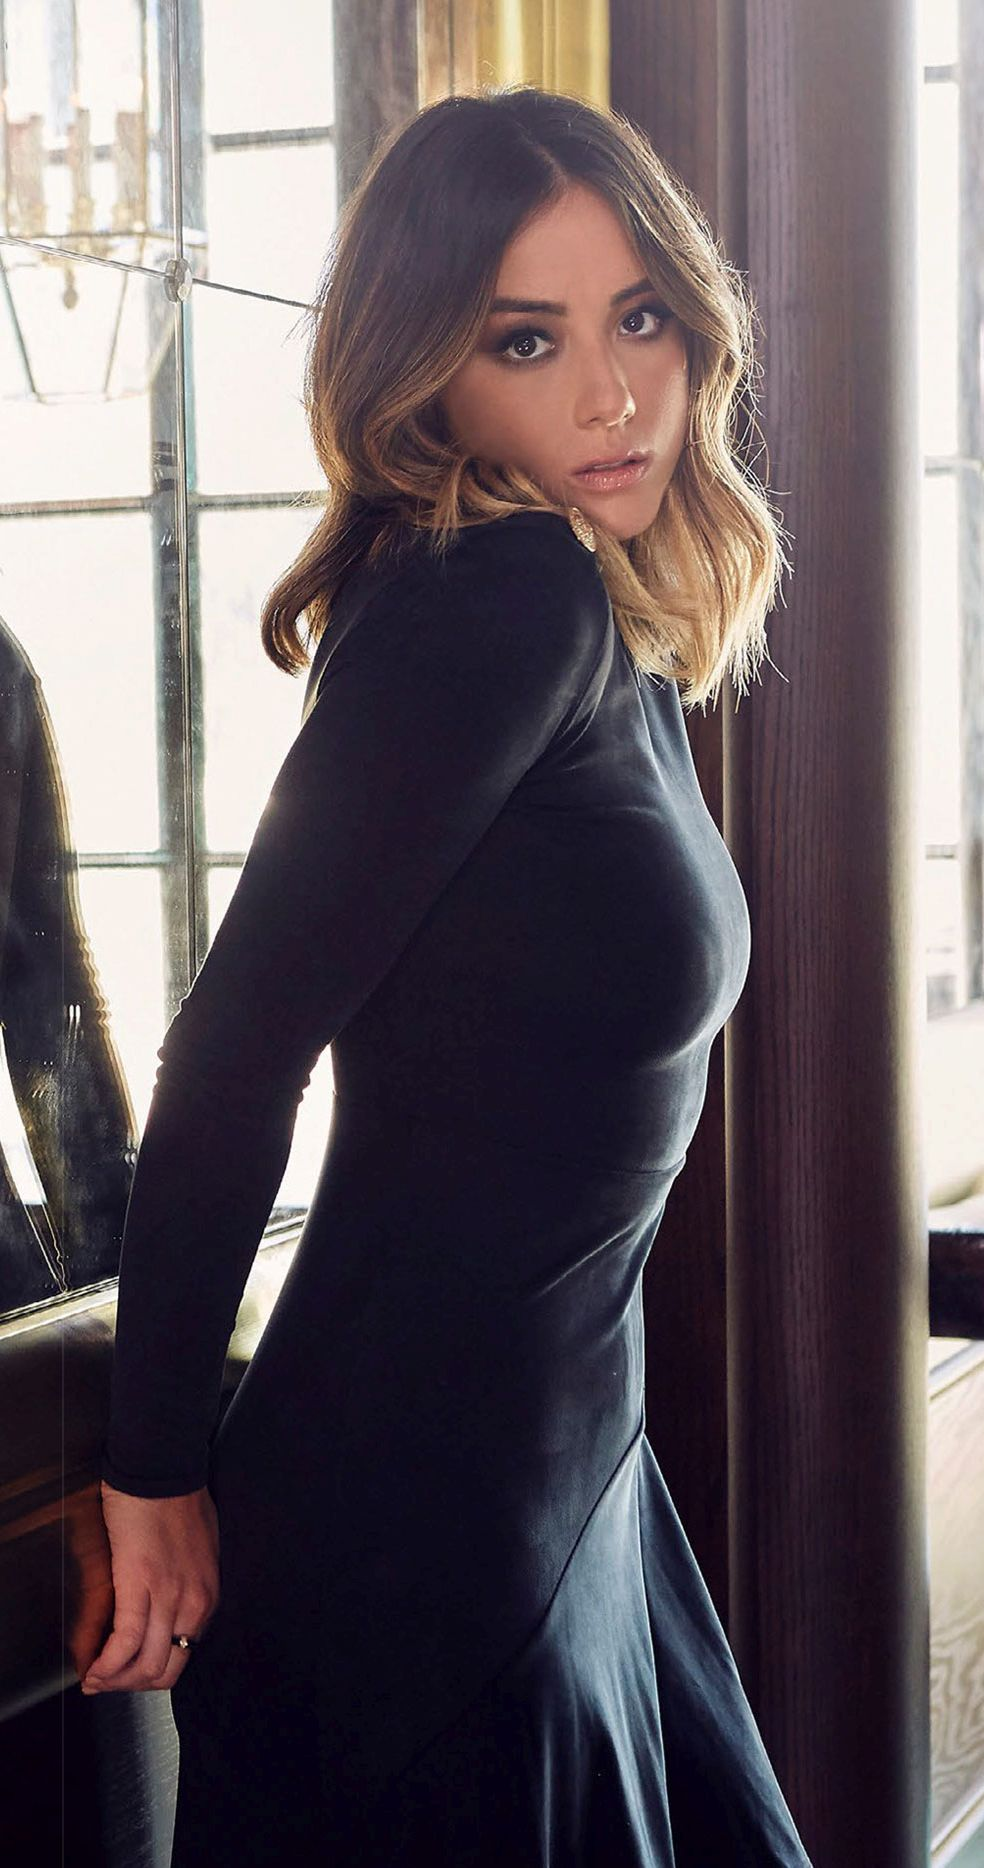 Forum on this topic: CelebGate Ashley Graham Hot - 67 Photos, chloe-bennet-cleavage/